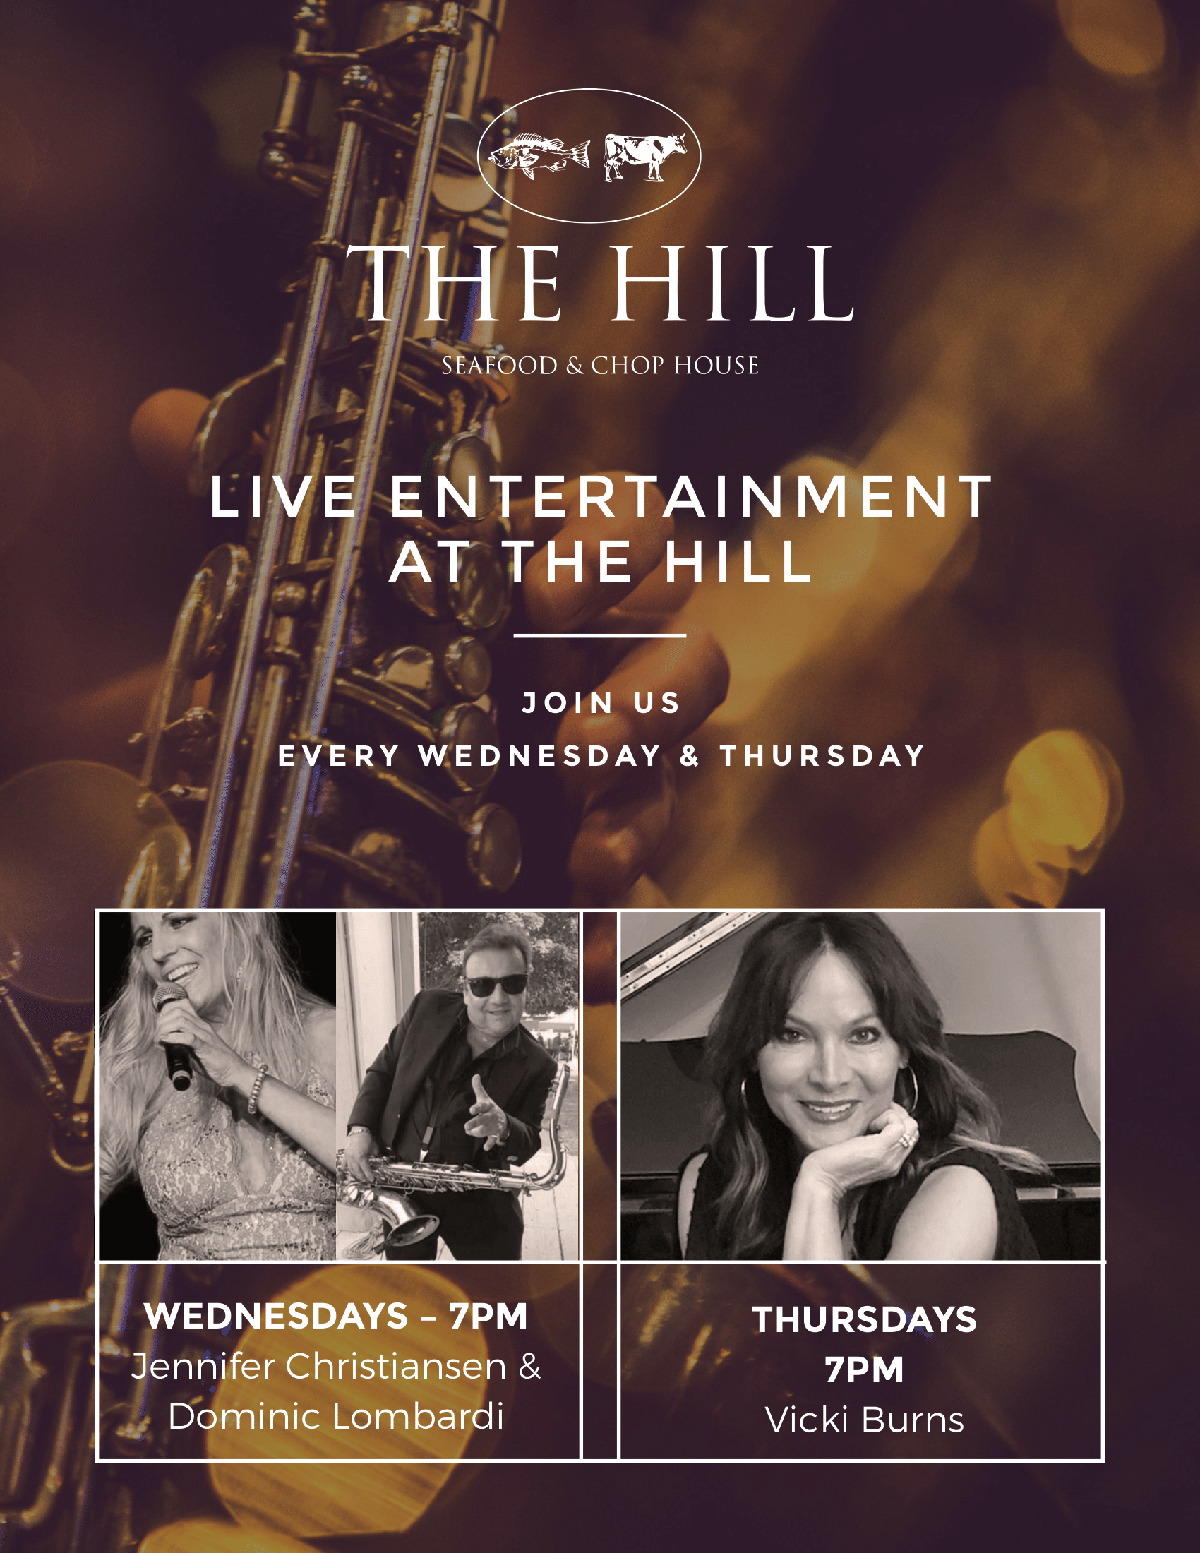 Live entertainment at The Hill. Join us every wednesday and thursday. Wednesdays - 7pm: Jennifer Christiansen & Dominic Lombardi. Thursdays 7PM: Vicki Burns.